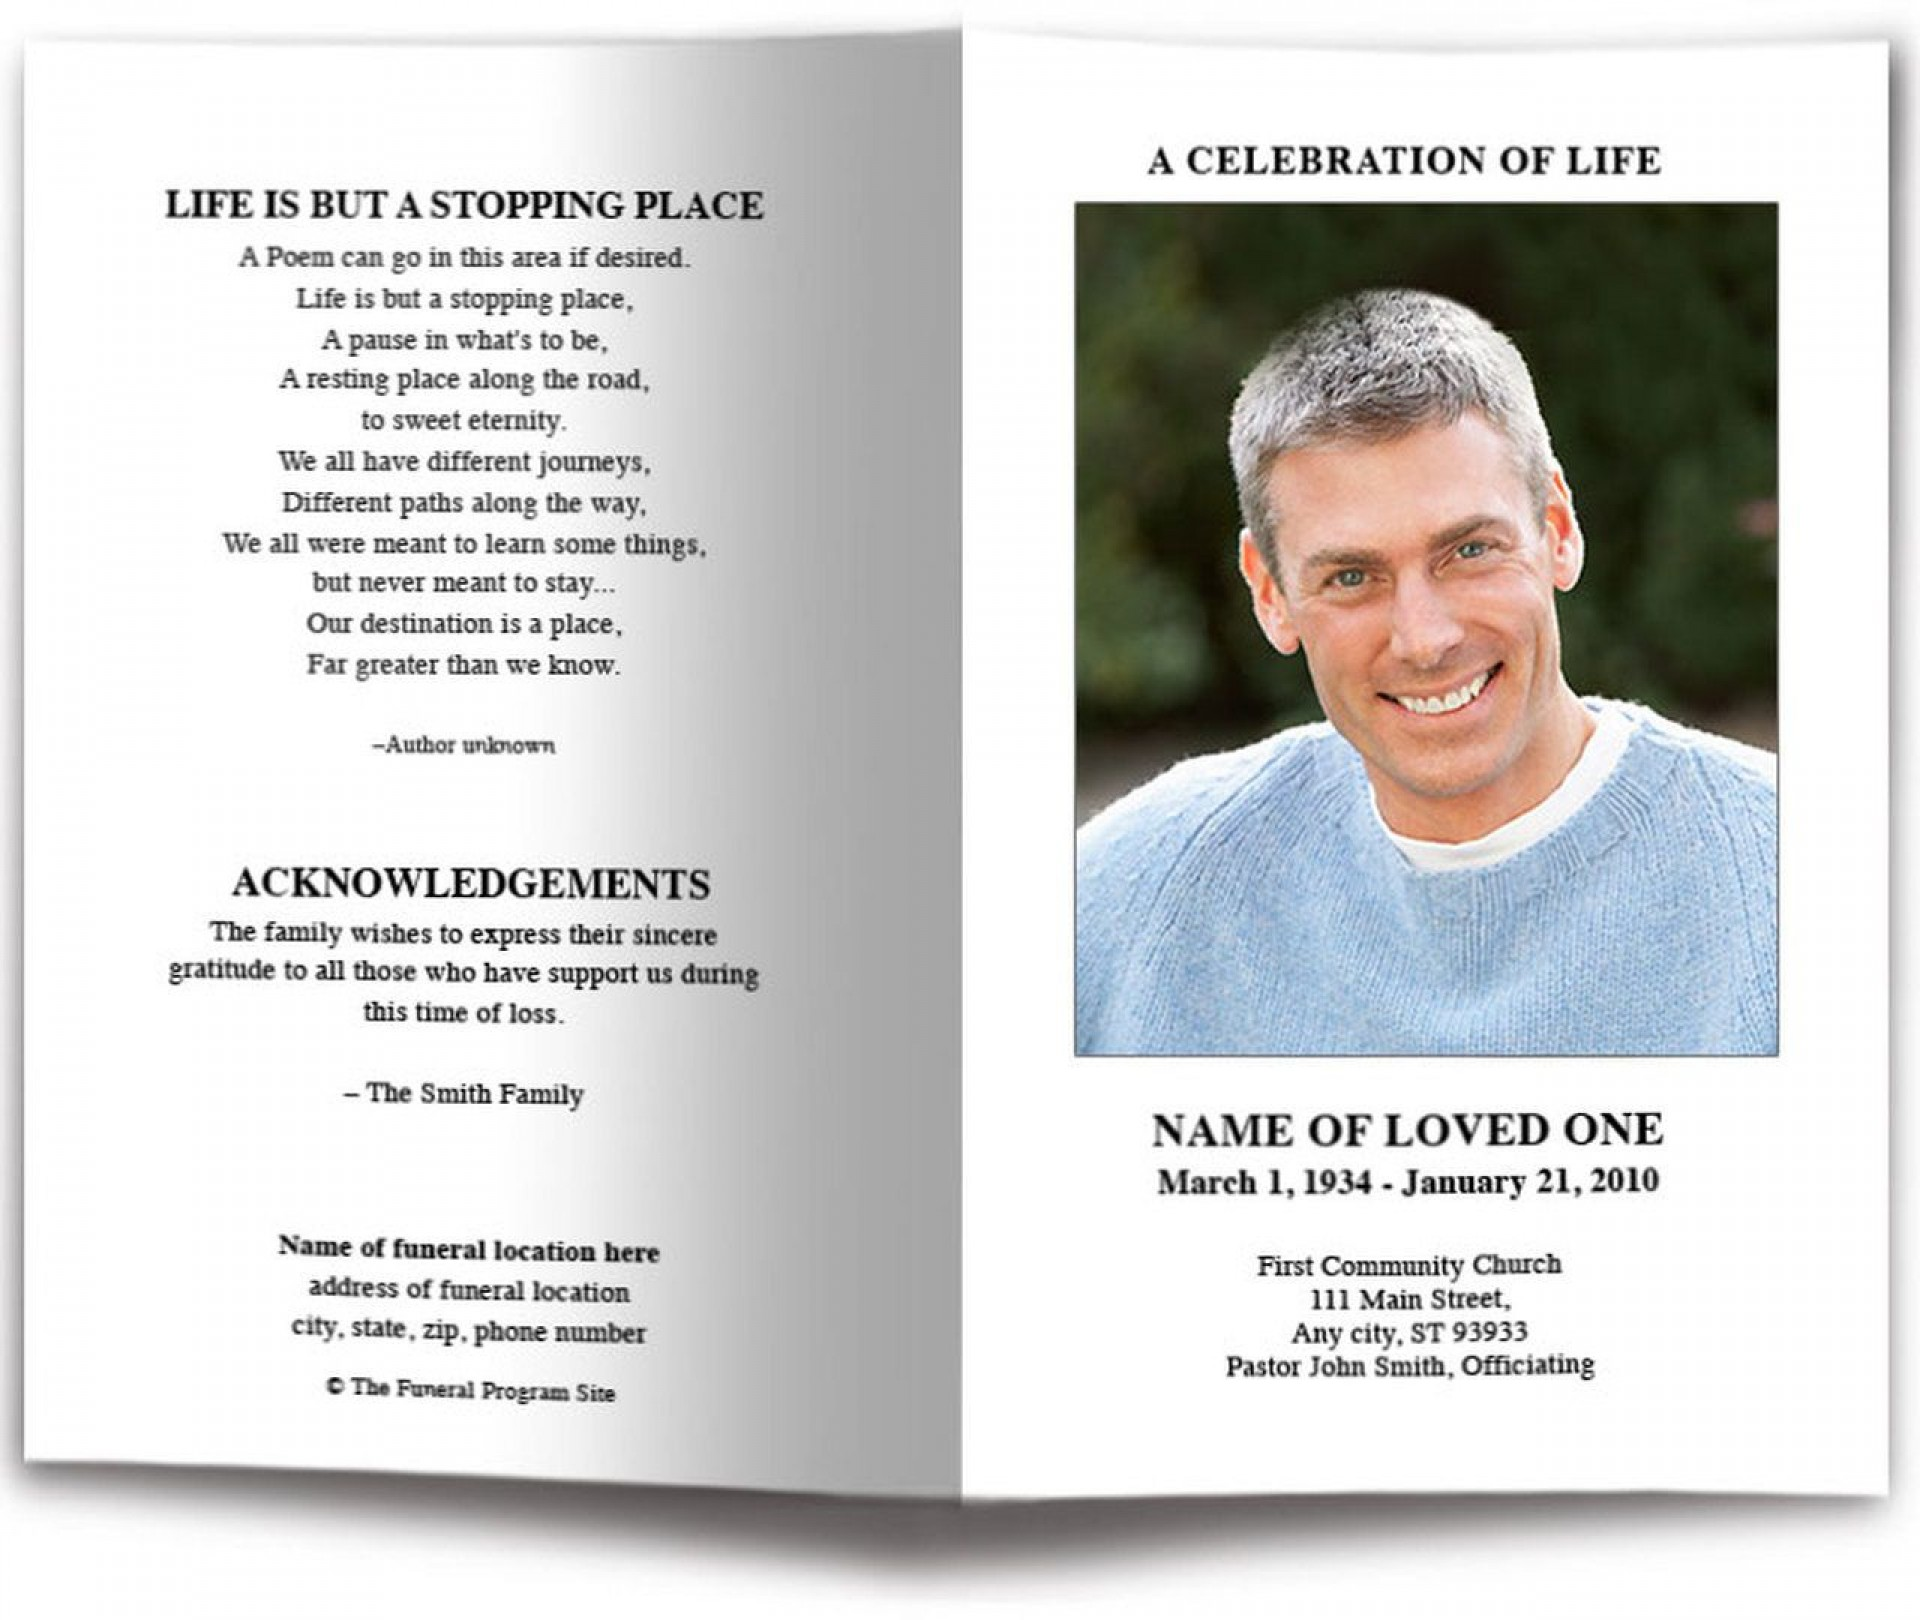 007 Magnificent Simple Funeral Program Template Free Photo  Download1920